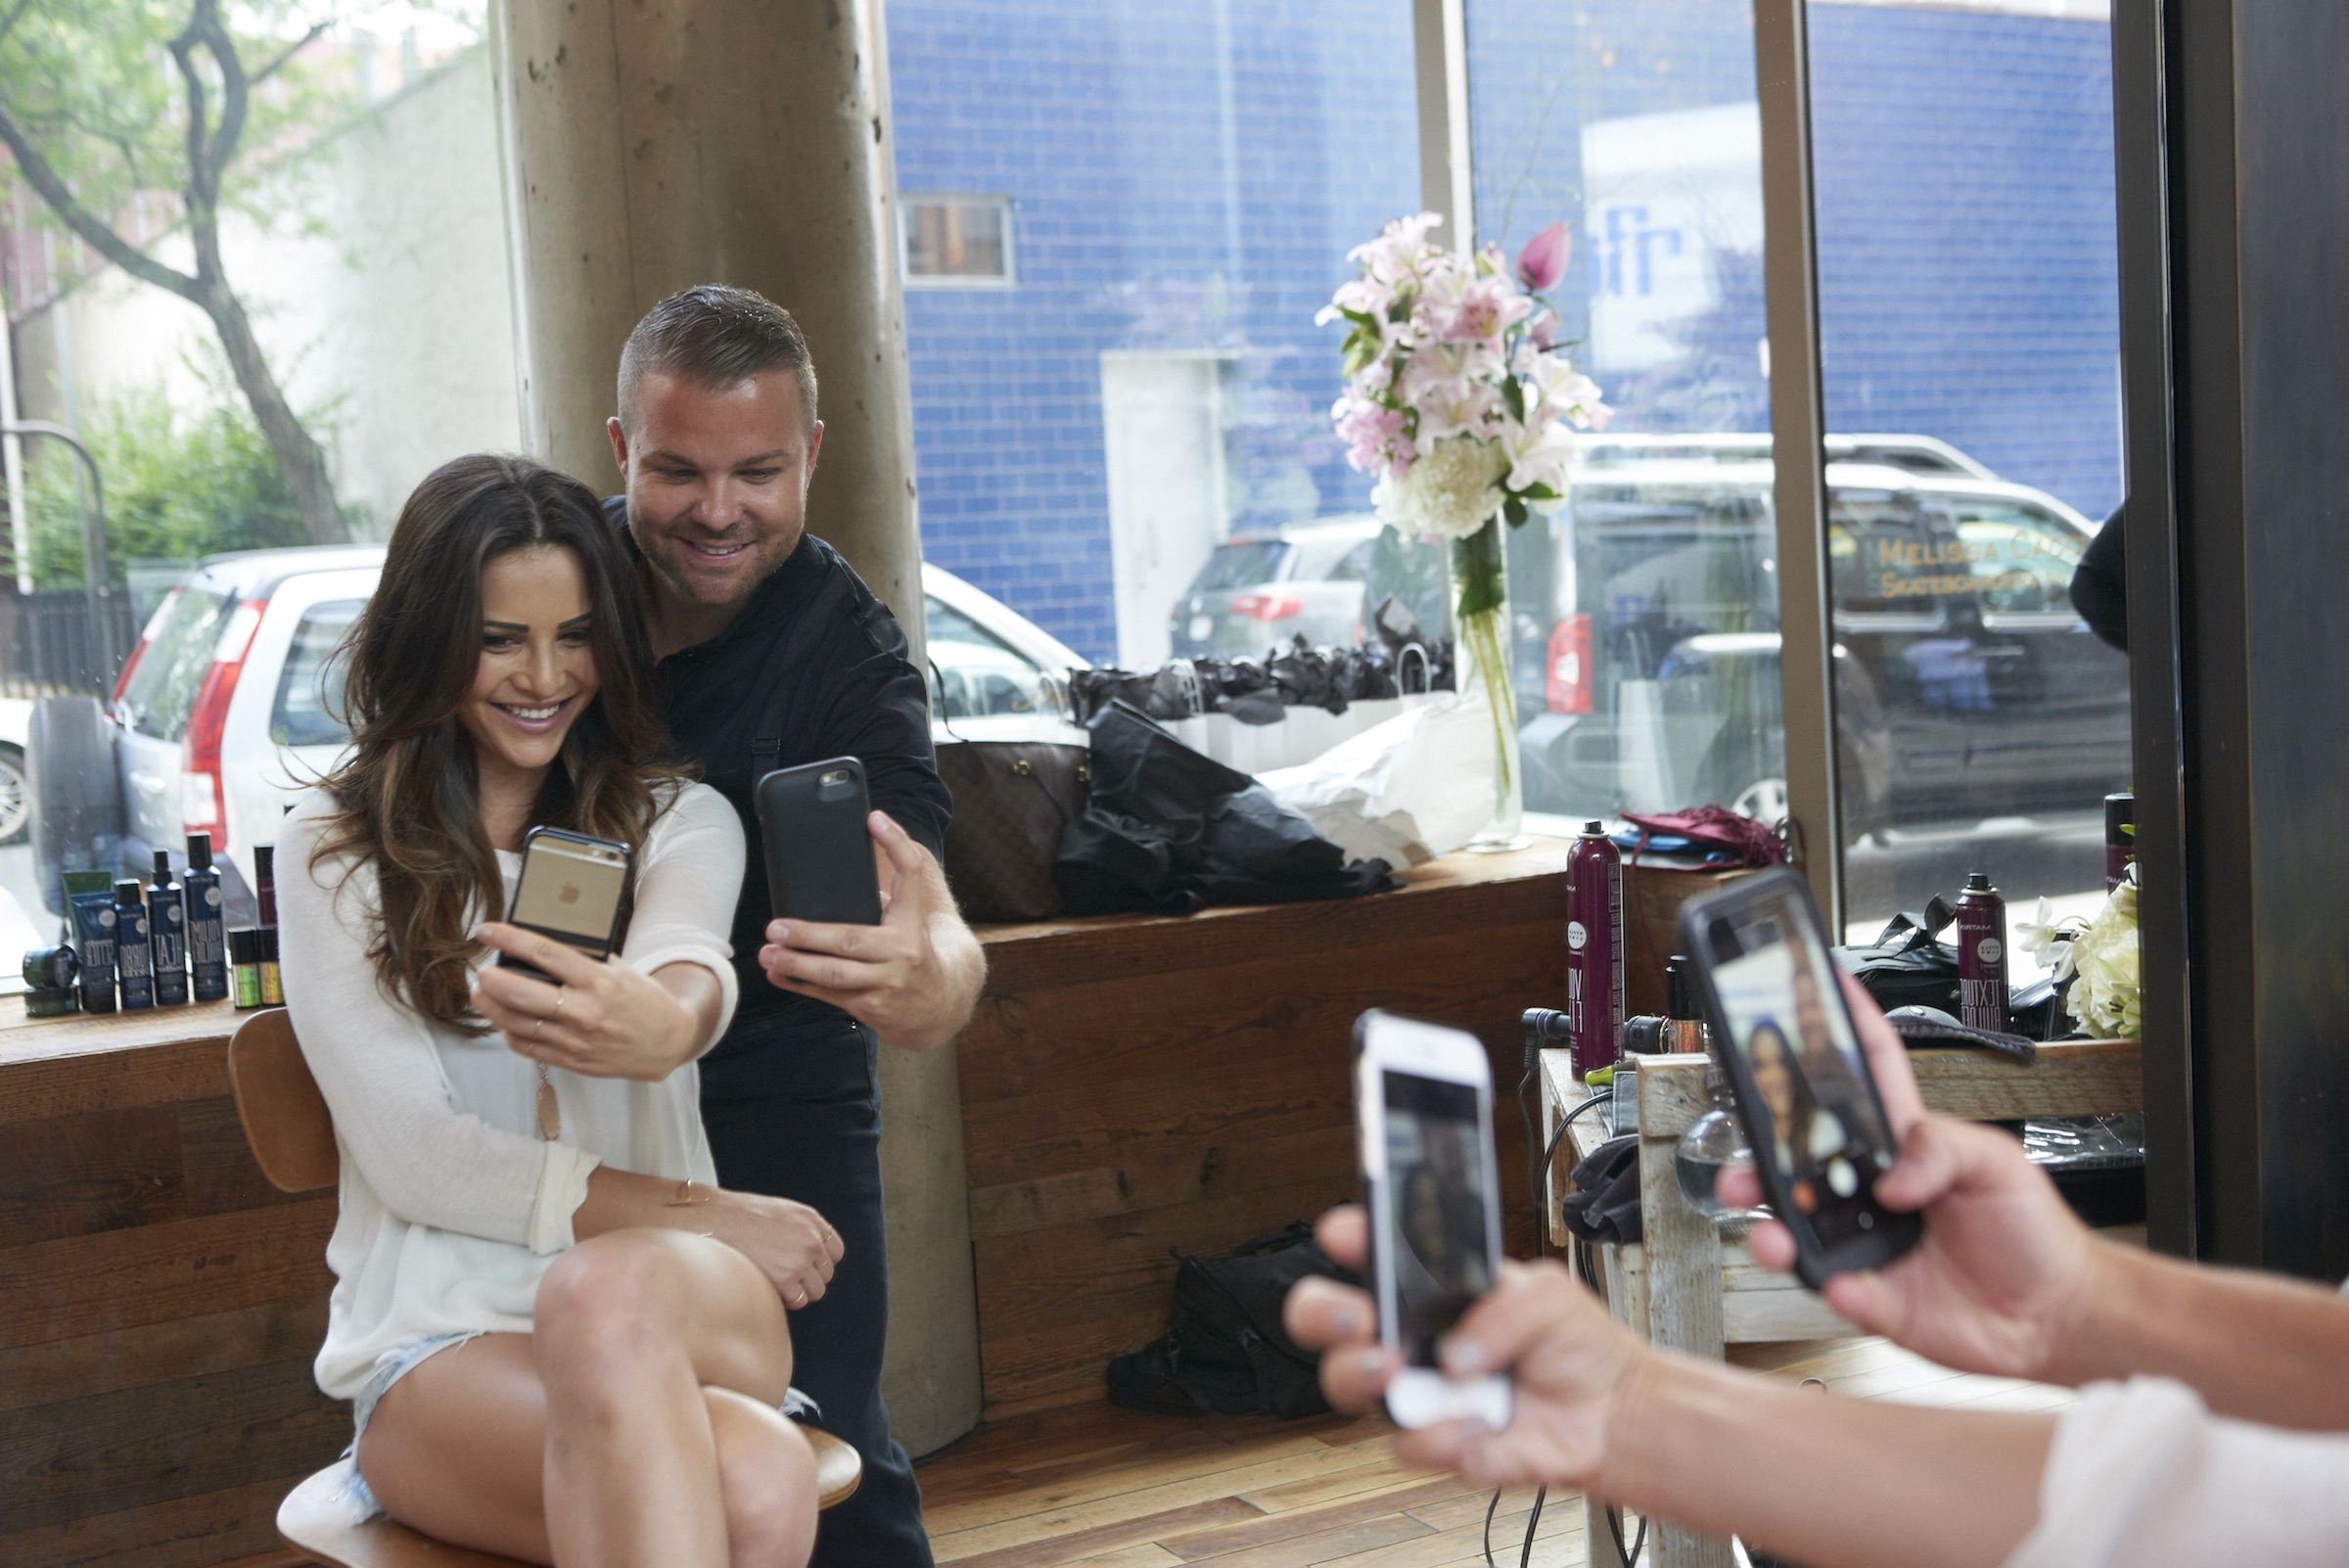 Nick Stenson takes a selfie with Andi Dorfman in New York